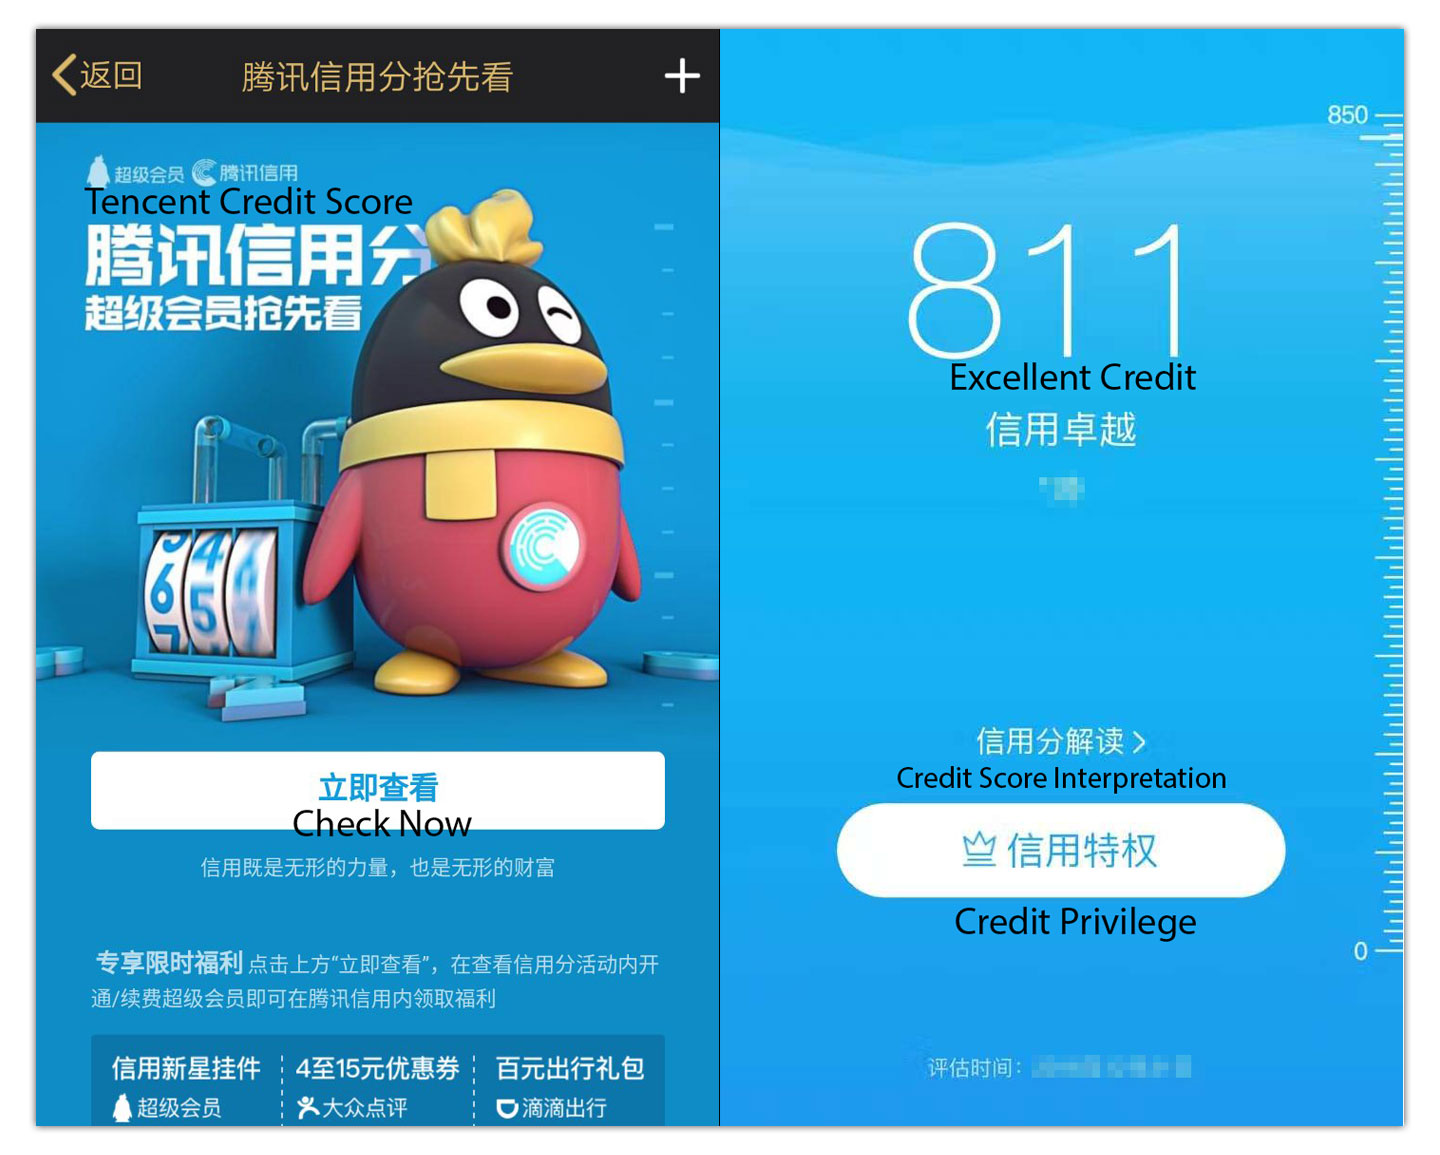 Tencent Credit Score